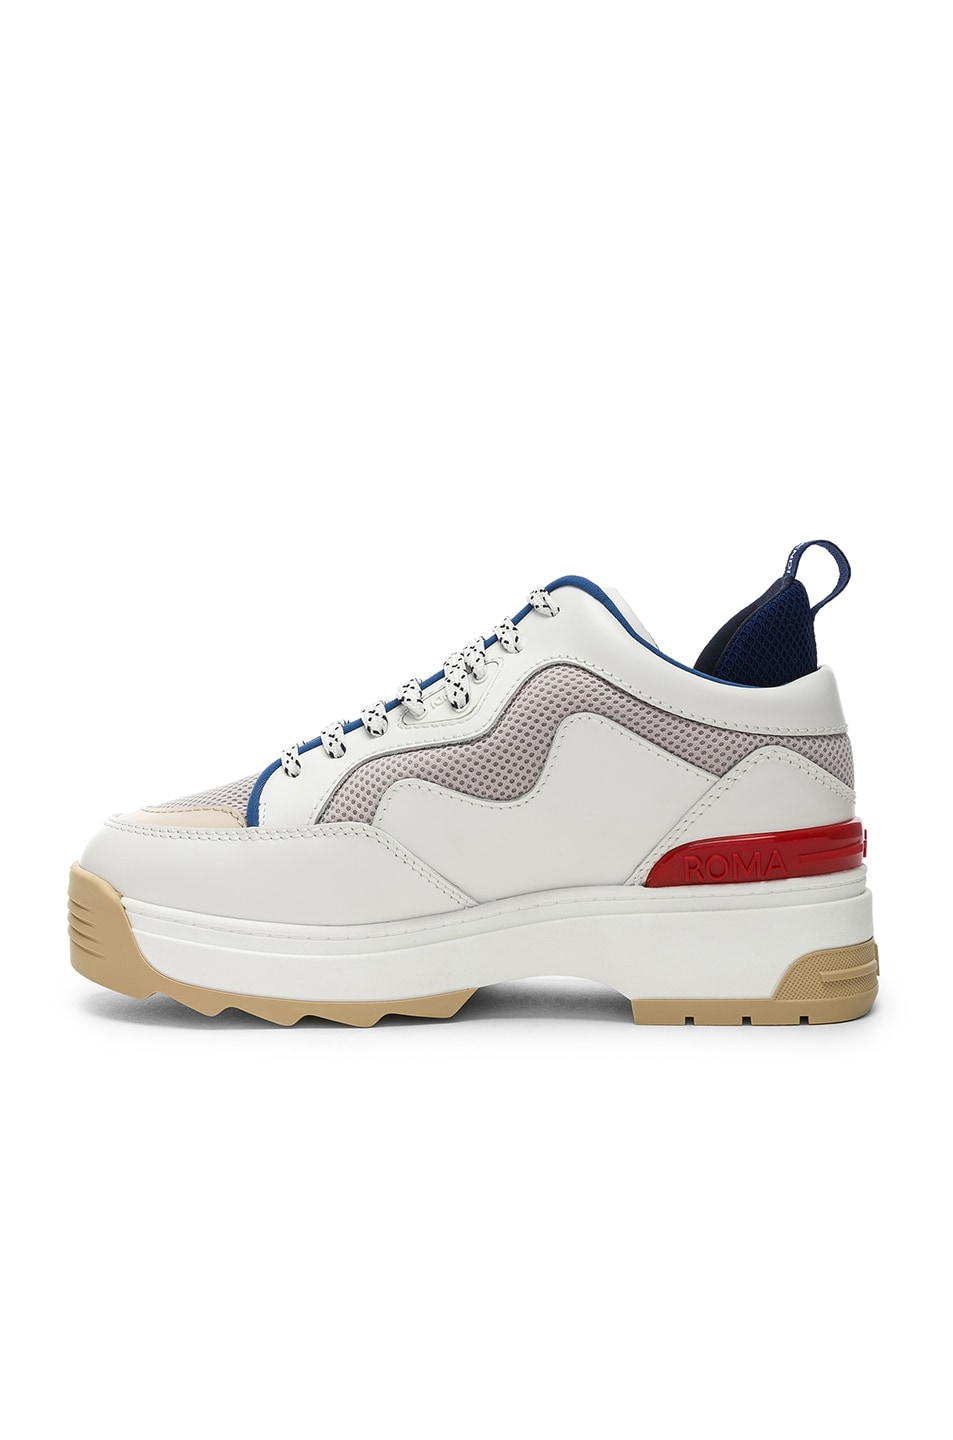 Image 5 of Fendi T-Rex Sneakers in White